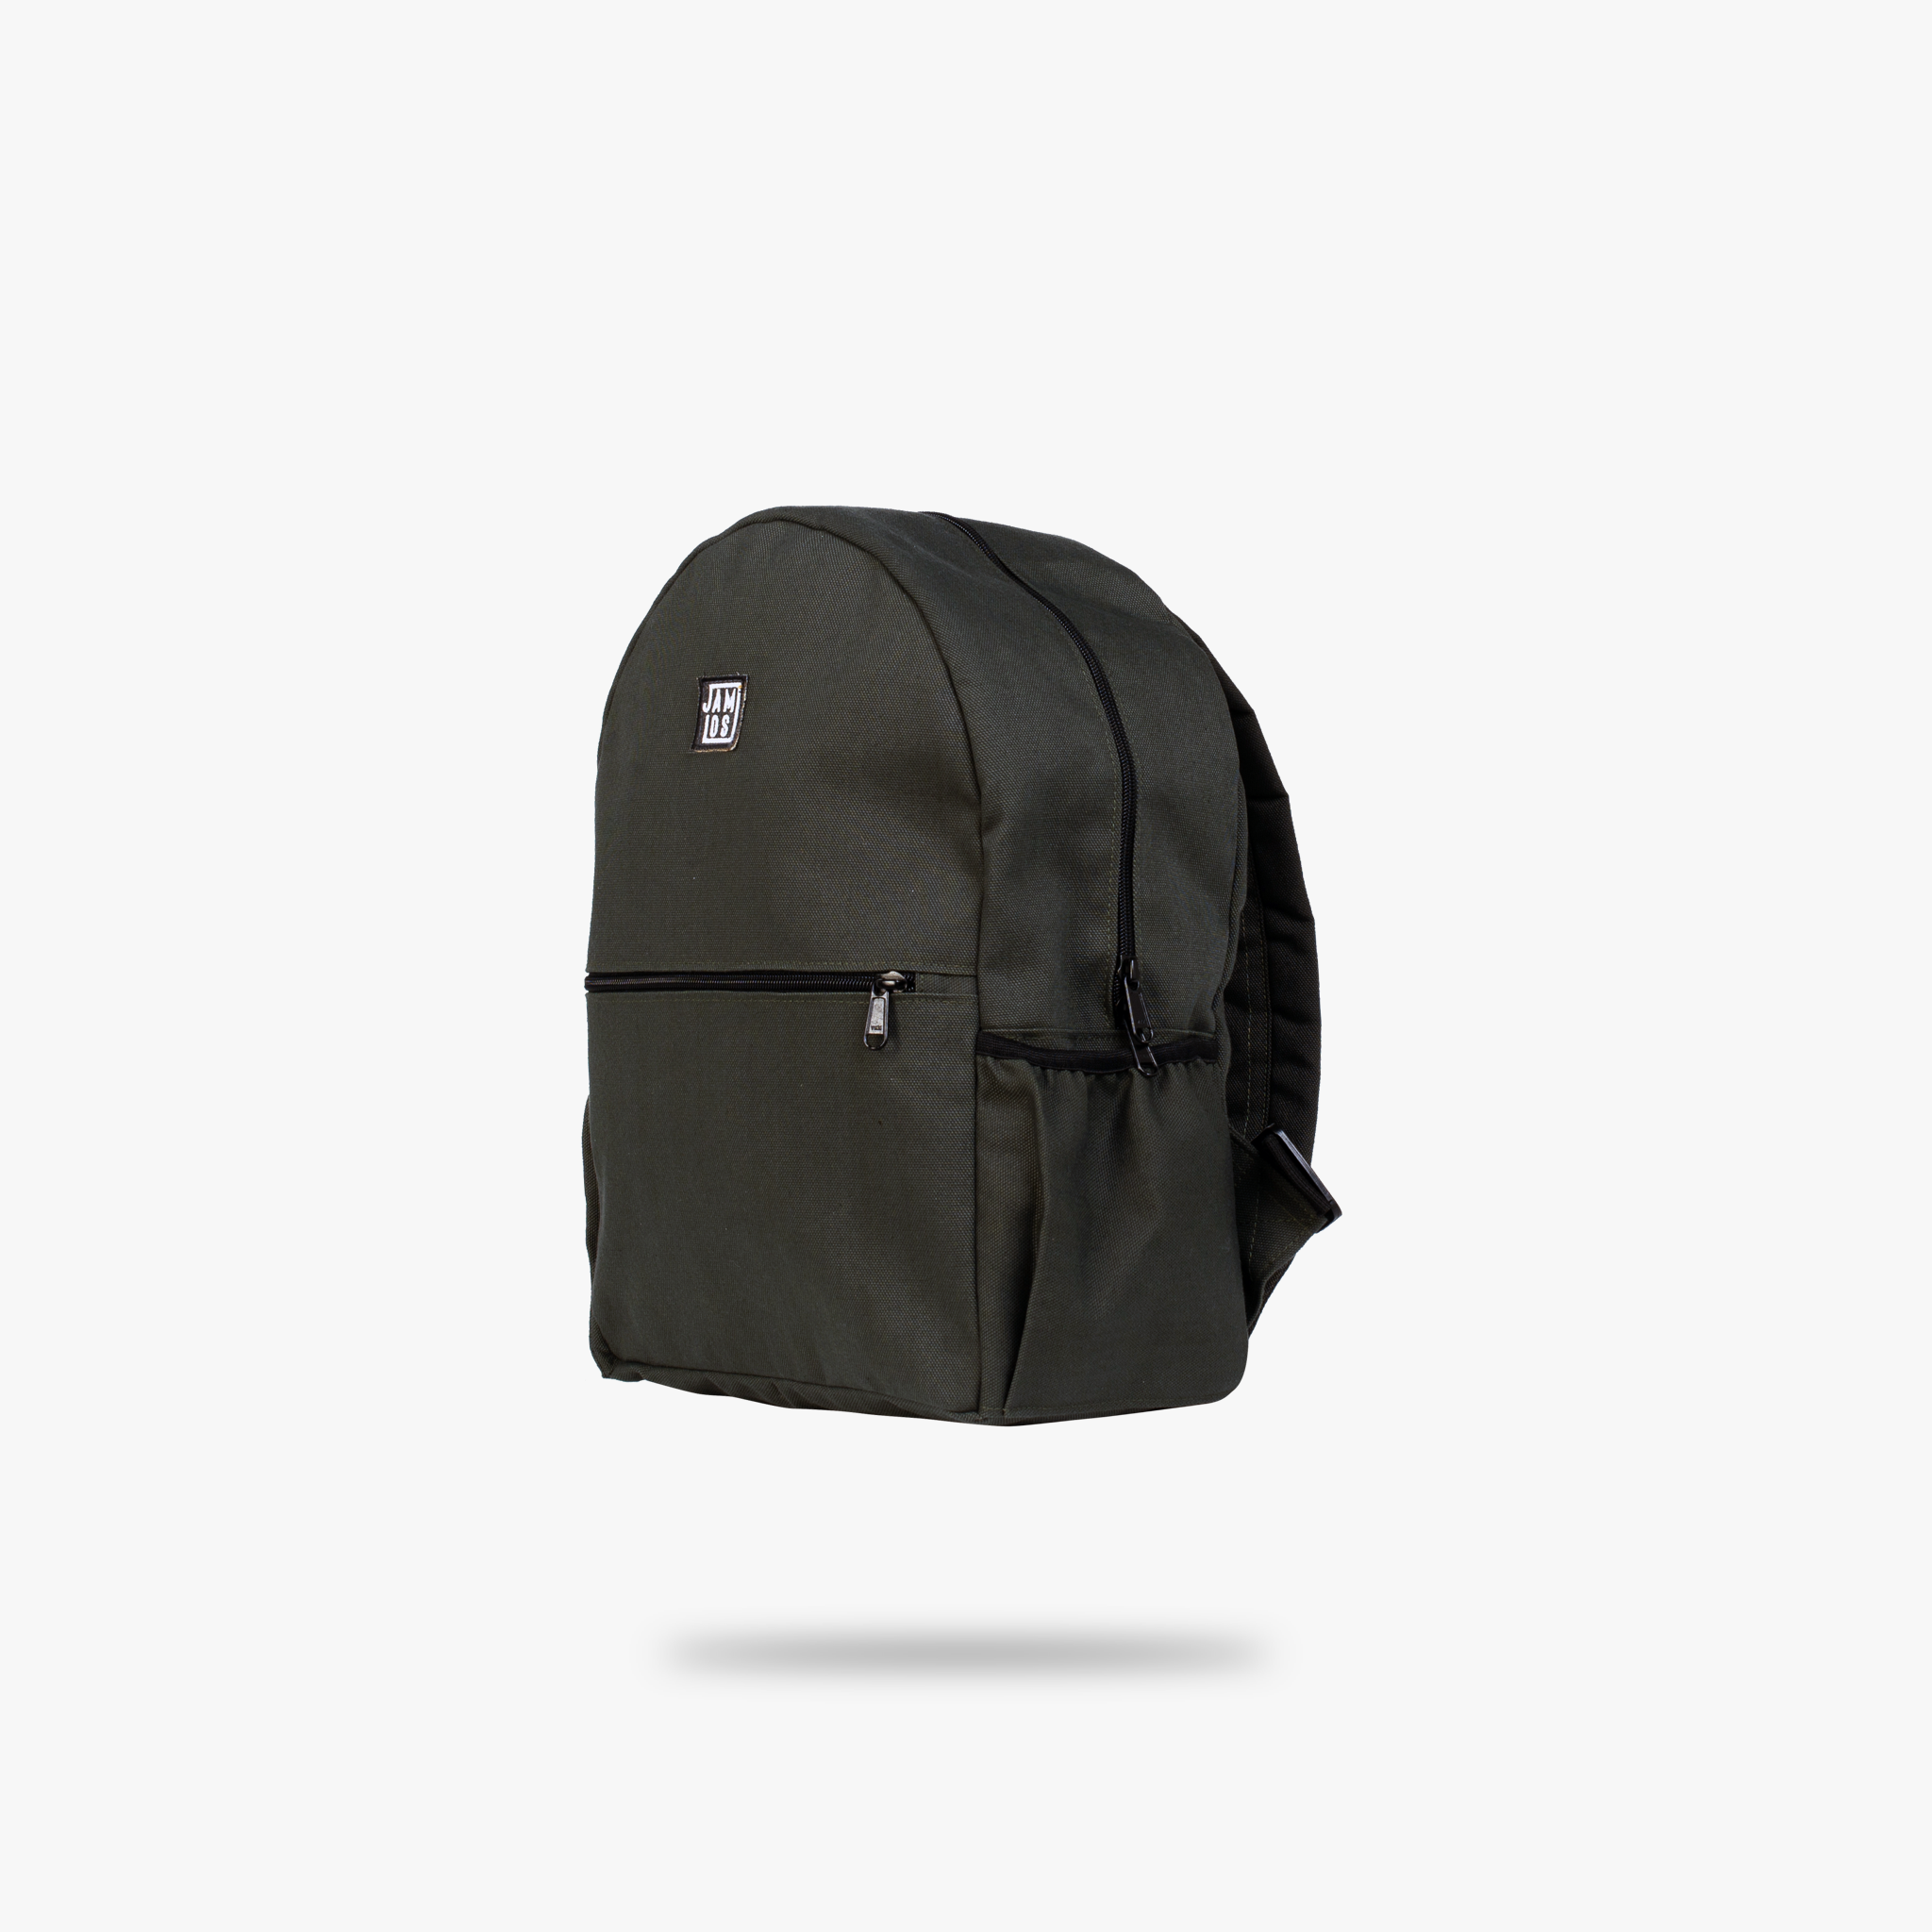 BASIC BACKPACK - Butter